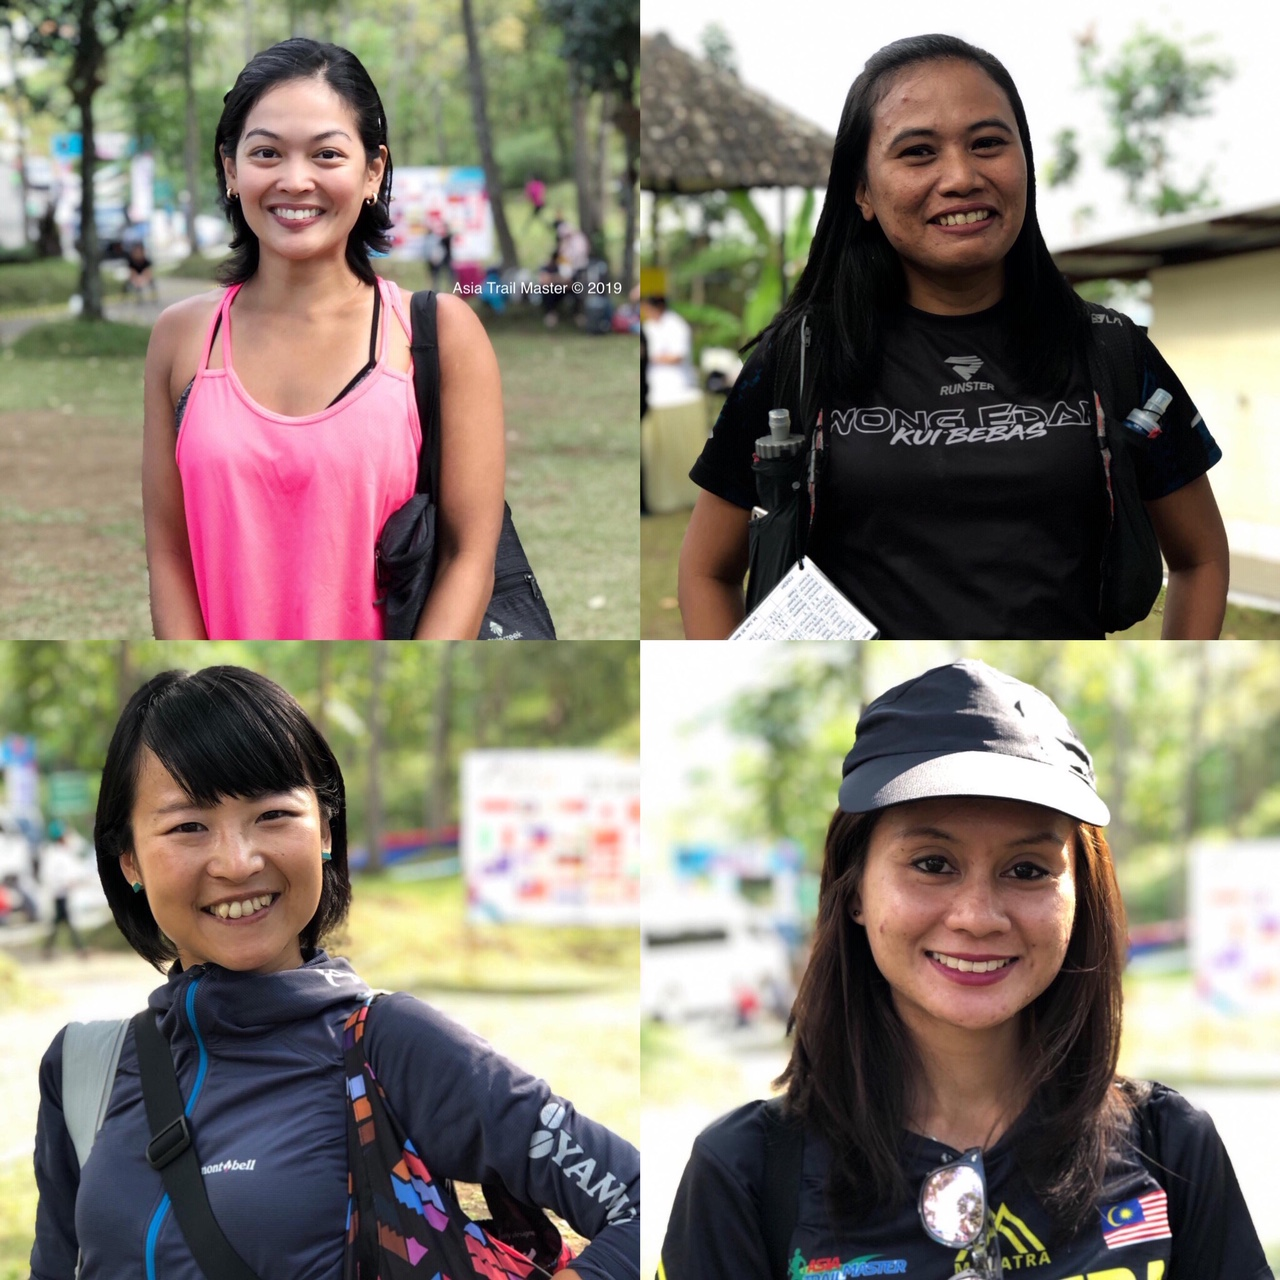 Several women are brave enough to tackle the 116K. This quartet may challenge for podium or more